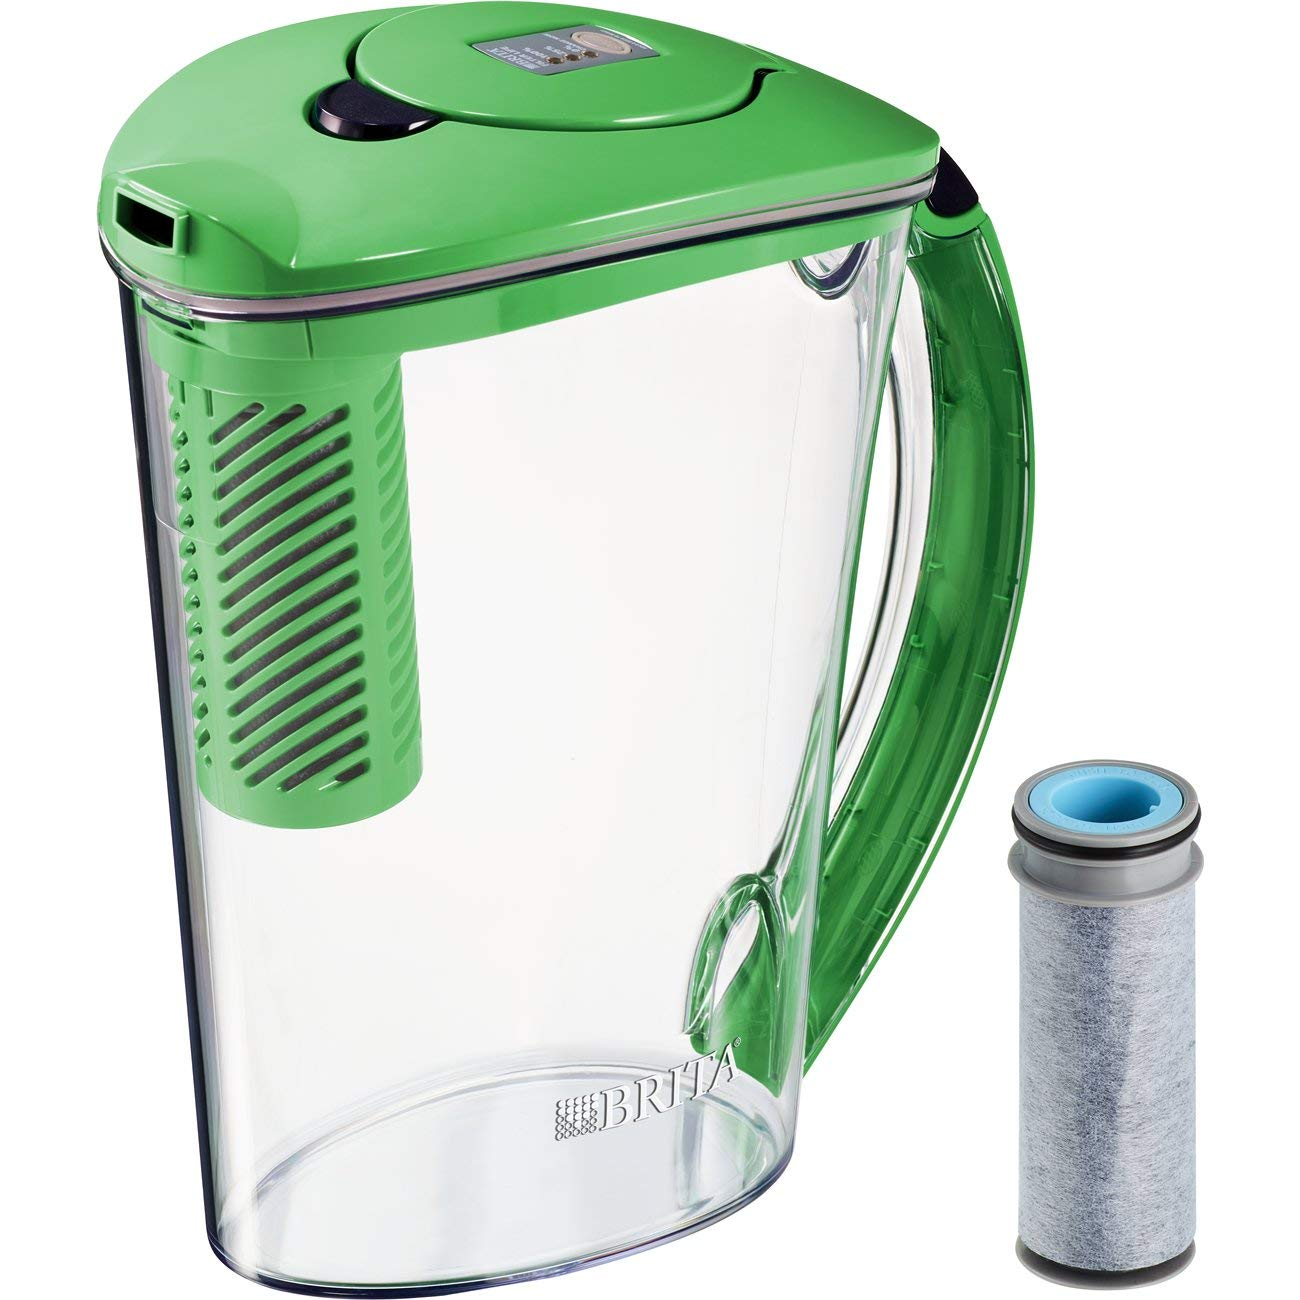 Brita Pitchers 36322 Stream Filter-As-You-Pour Rapids Water Pitcher, 10 cup, Island Green by Brita